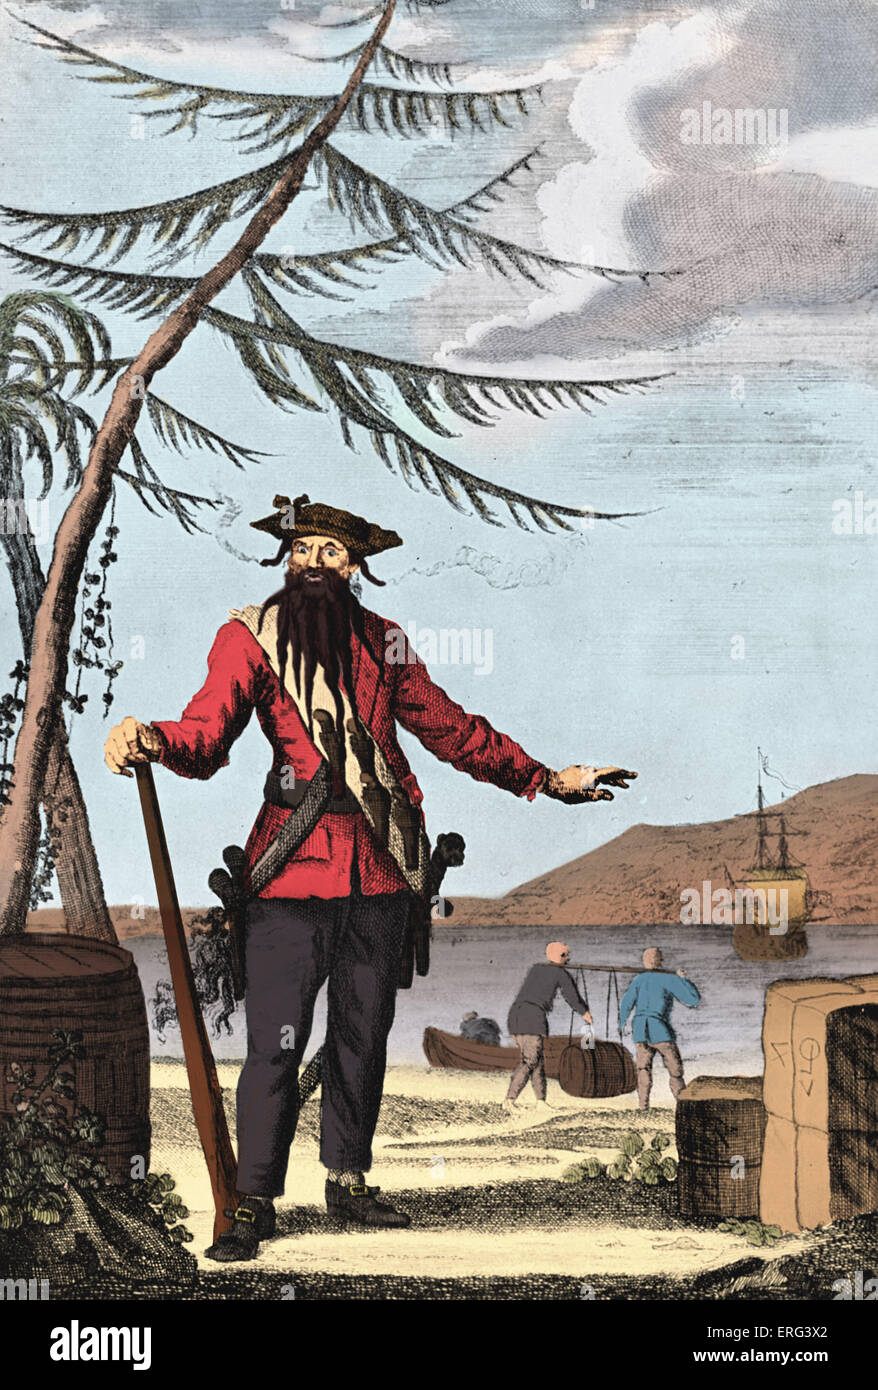 Captain Edward Teach, (Blackbeard), engraving. Portrait of Edward Teach (Thatch, born Edward Drummond), commonly - Stock Image